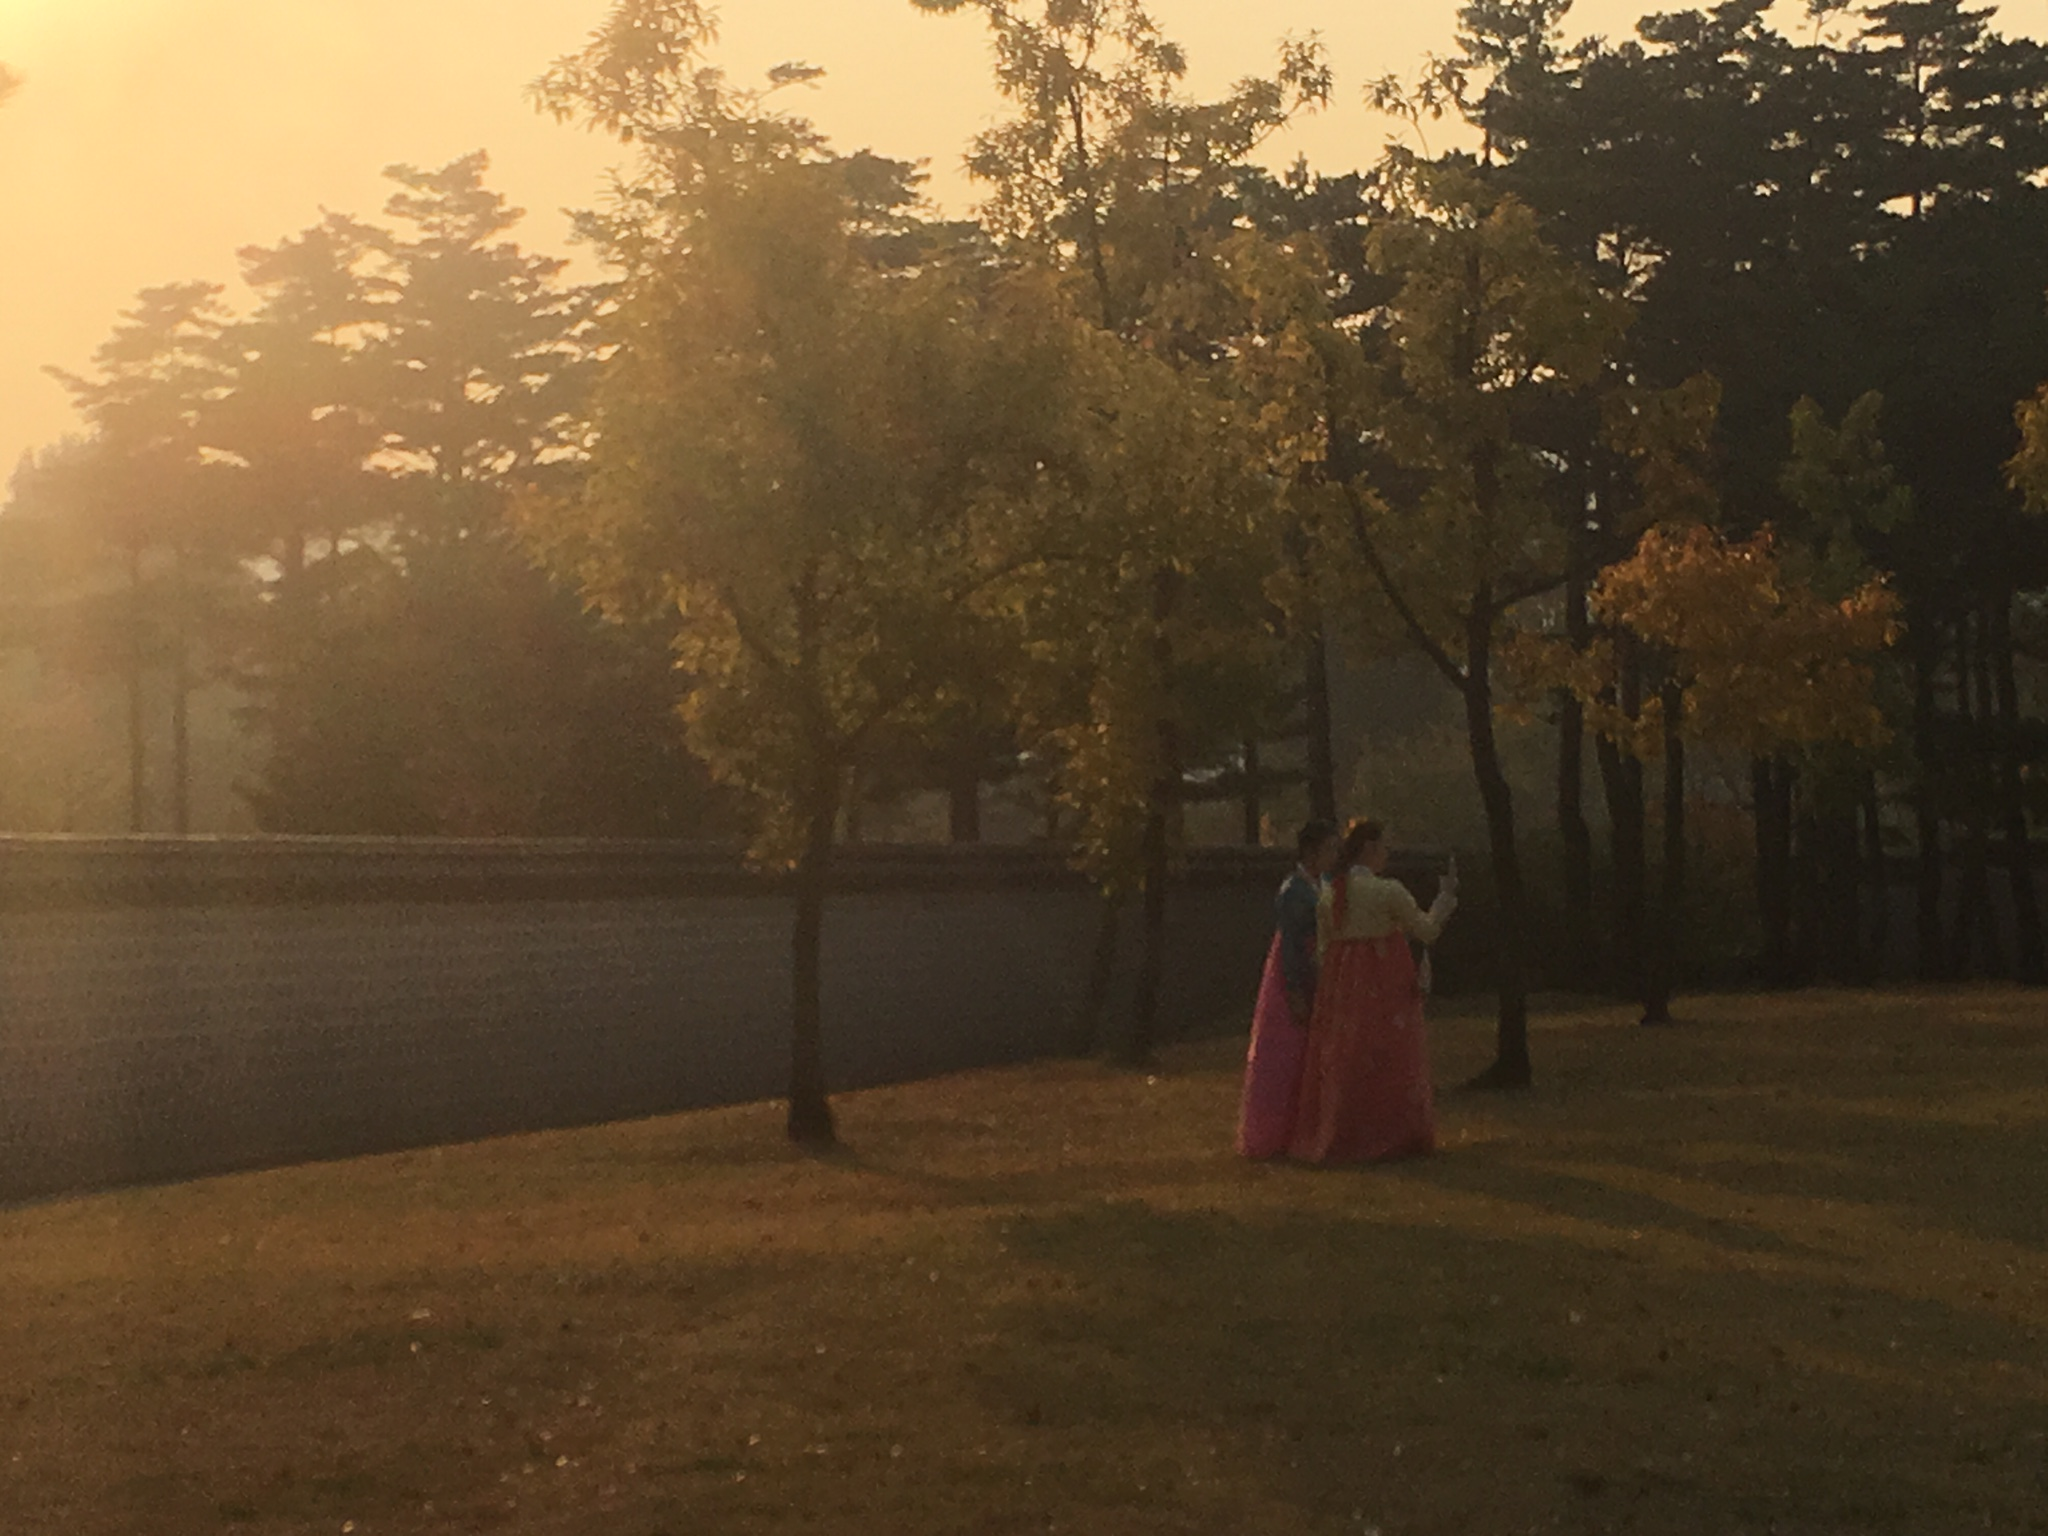 Selfies in traditional hanbok at Gyeongbokgung palace